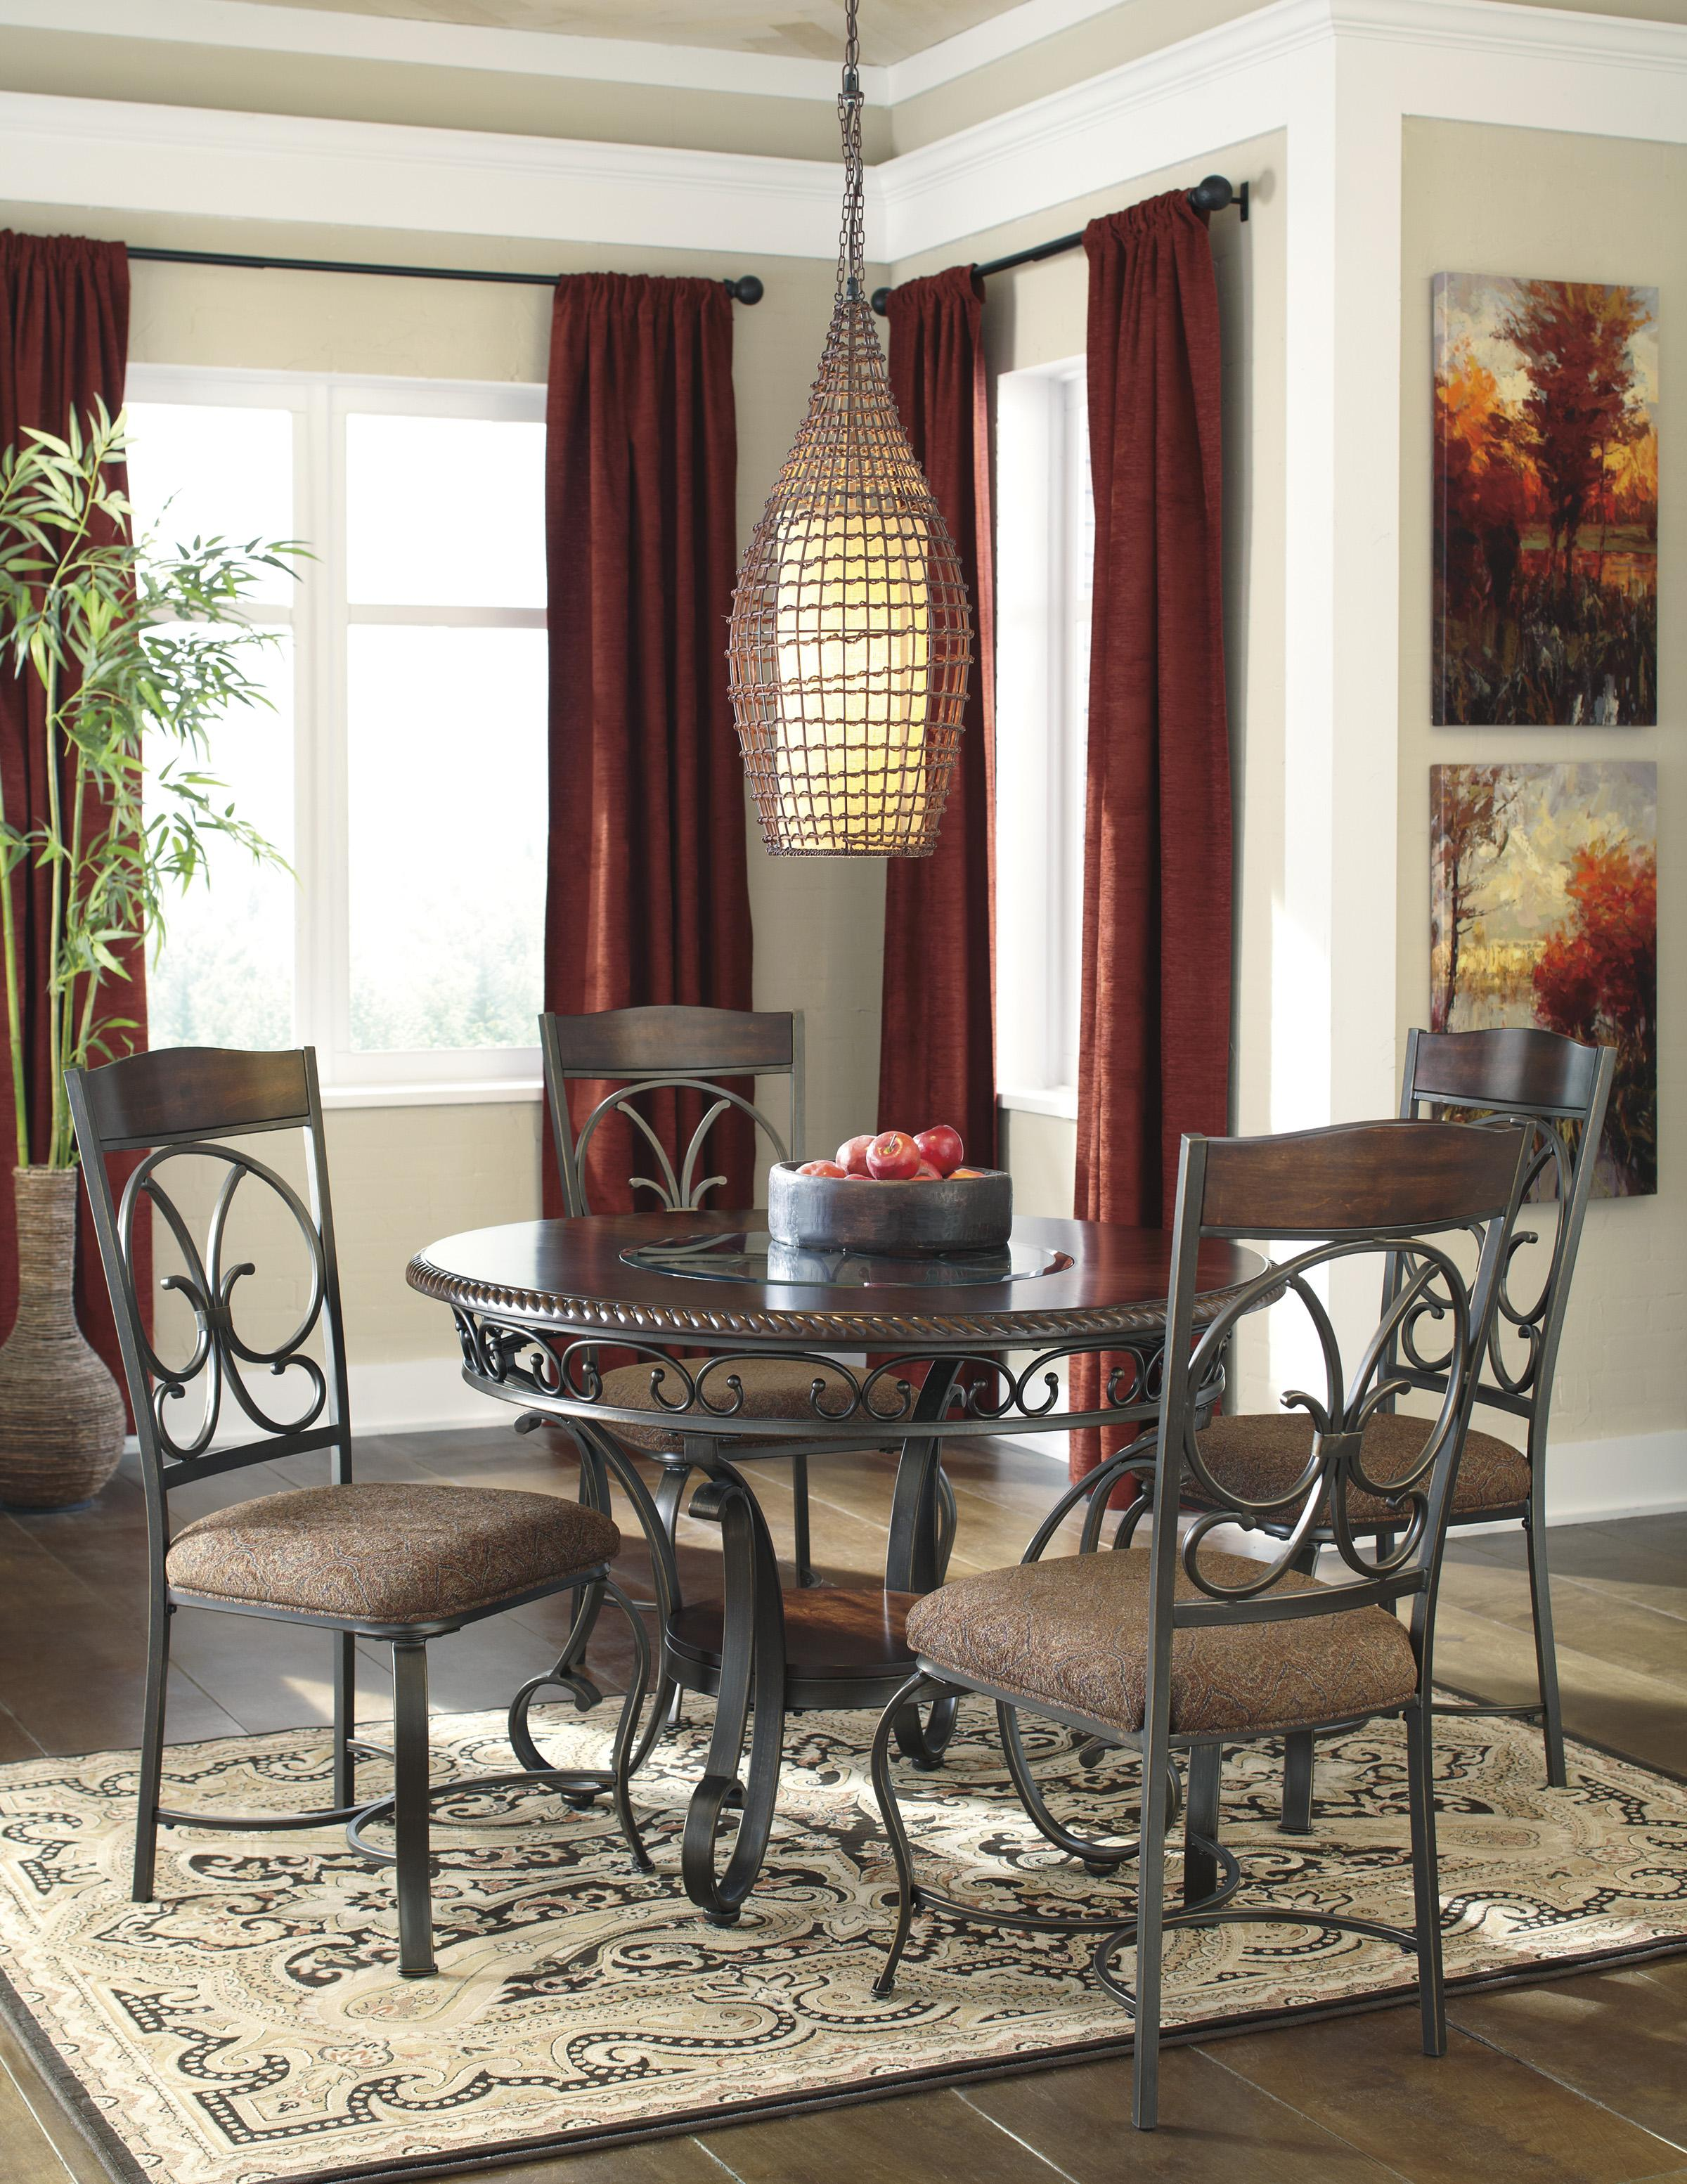 Signature Design by Ashley Glambrey Round Dining Table and 4 Chair Set with  Metal Accents   Wayside Furniture   Dining 5 Piece Set. Signature Design by Ashley Glambrey Round Dining Table and 4 Chair